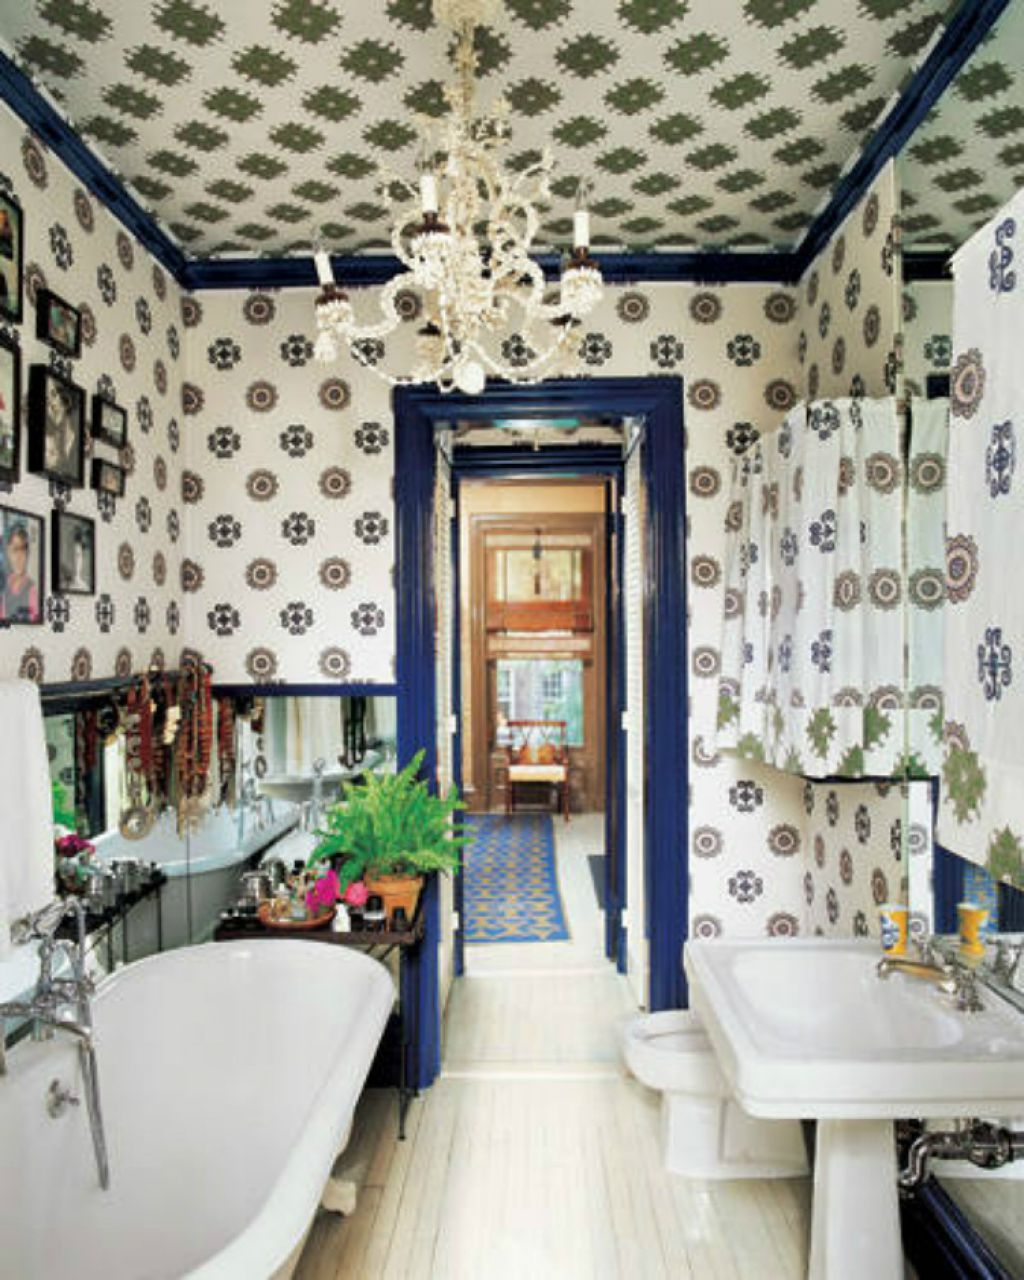 bathroom-with-wallpaper-in-the-walls-and-ceiling-also-using-small-bathroom-wallpaper